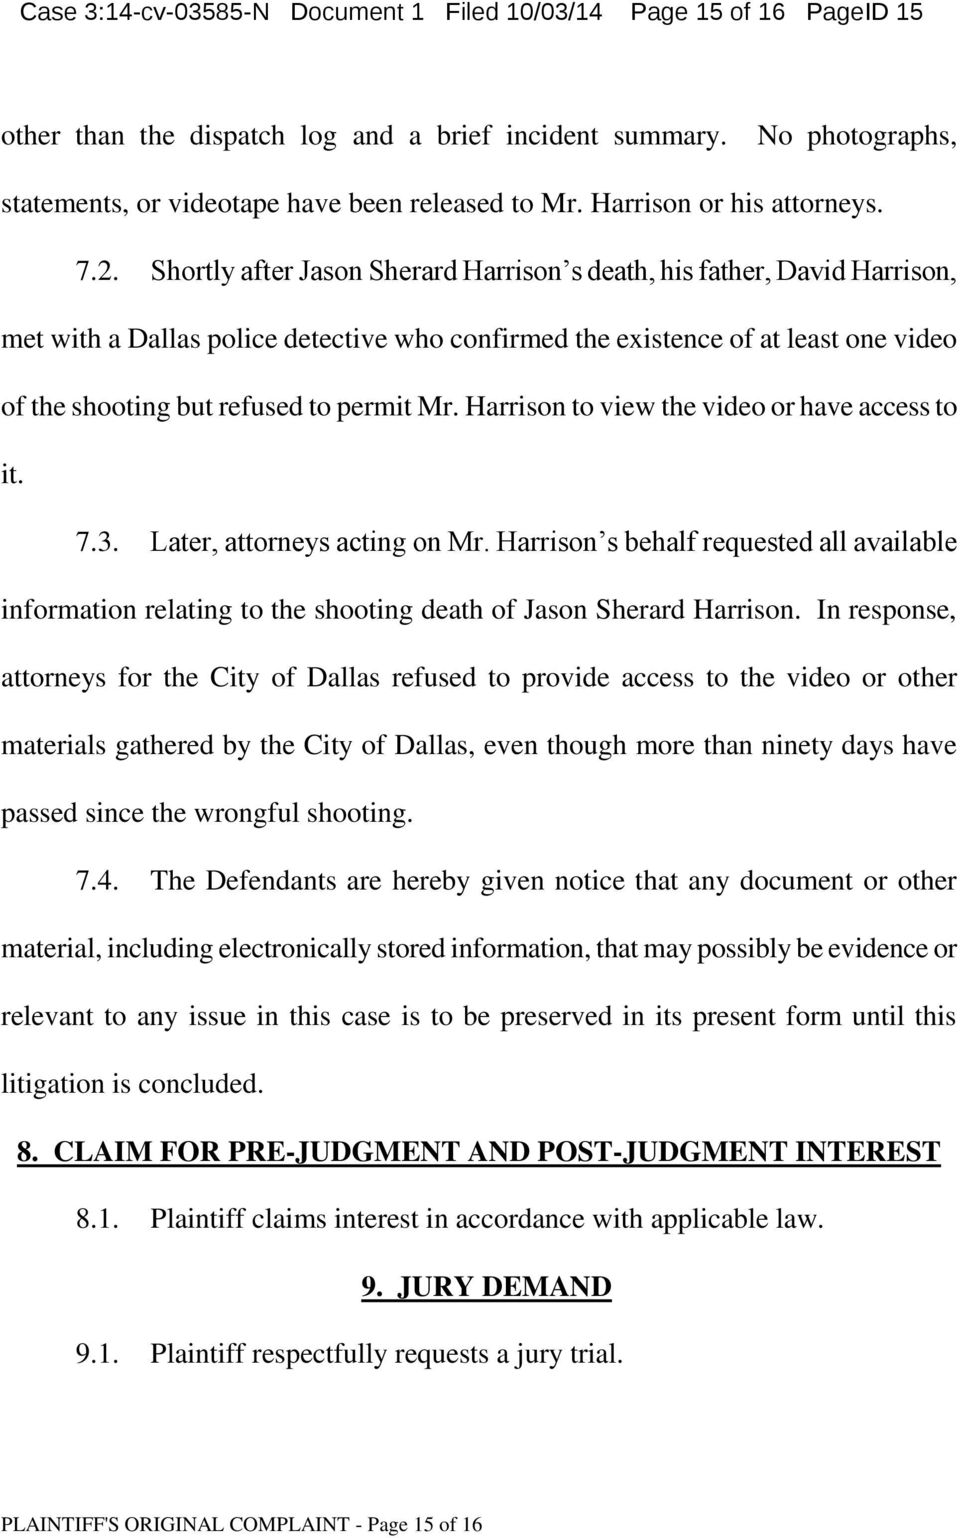 Shortly after Jason Sherard Harrison s death, his father, David Harrison, met with a Dallas police detective who confirmed the existence of at least one video of the shooting but refused to permit Mr.